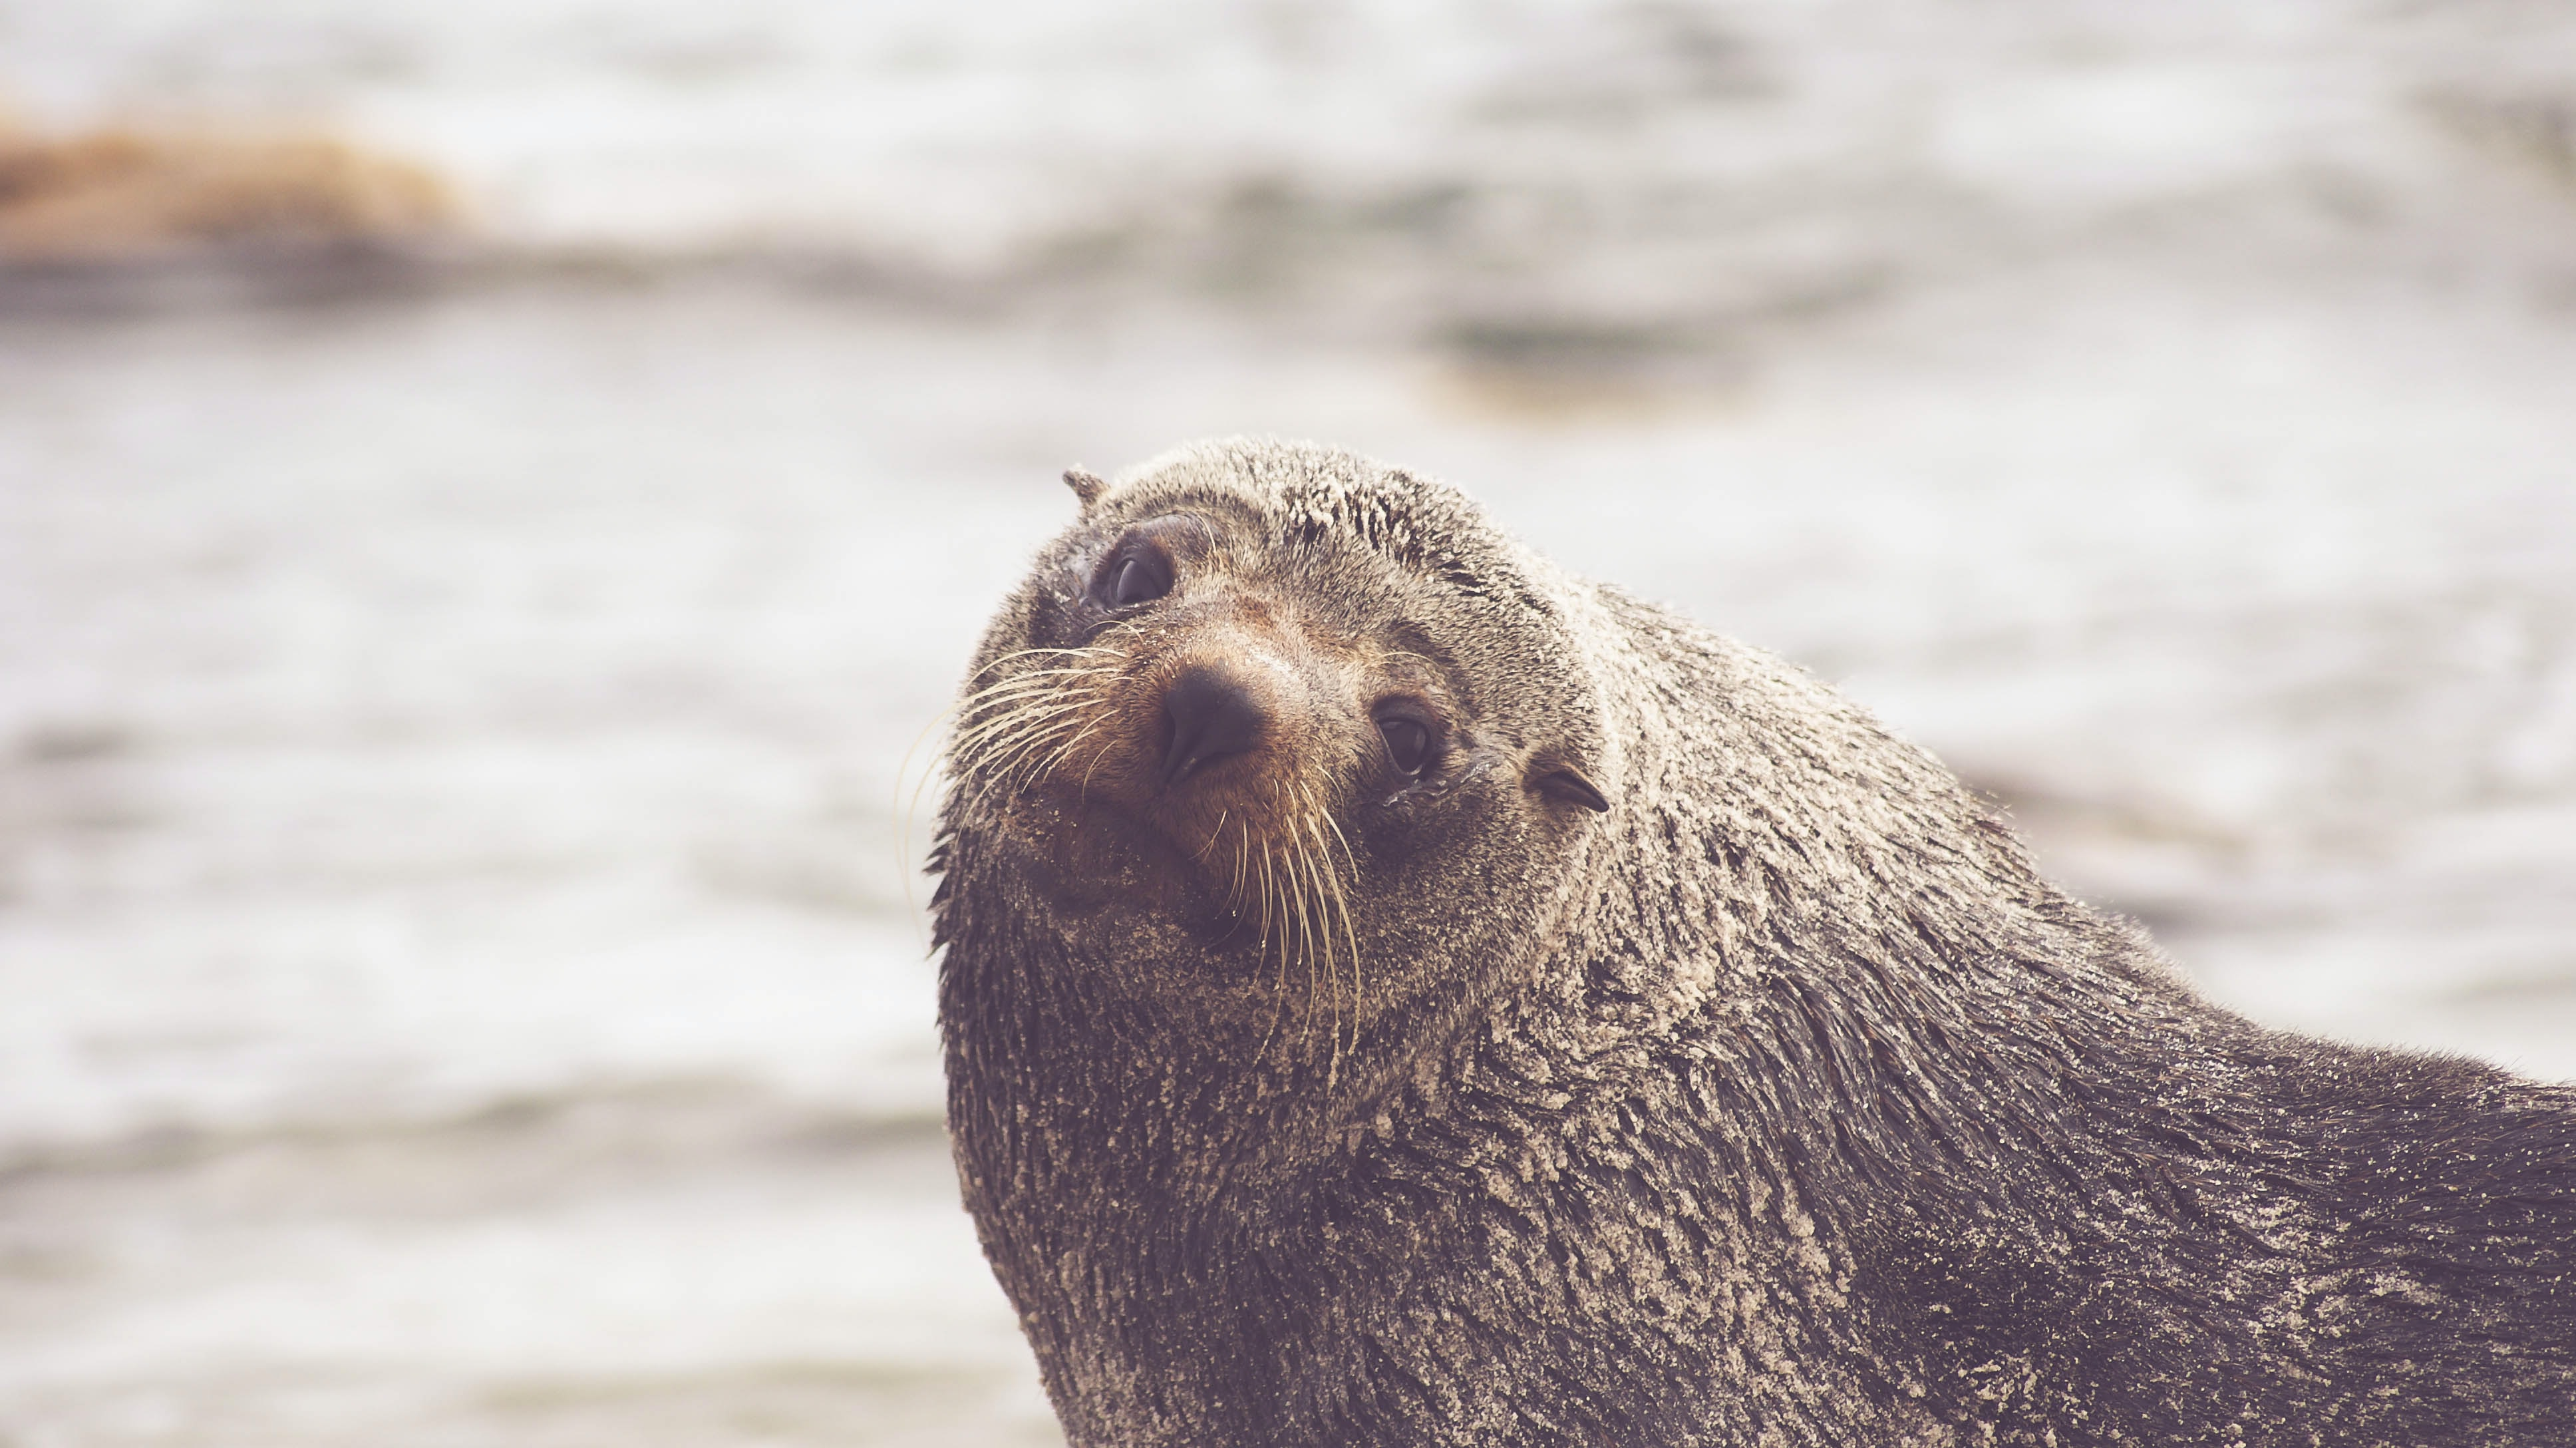 A close-up of a wet otter amiably looking at the camera